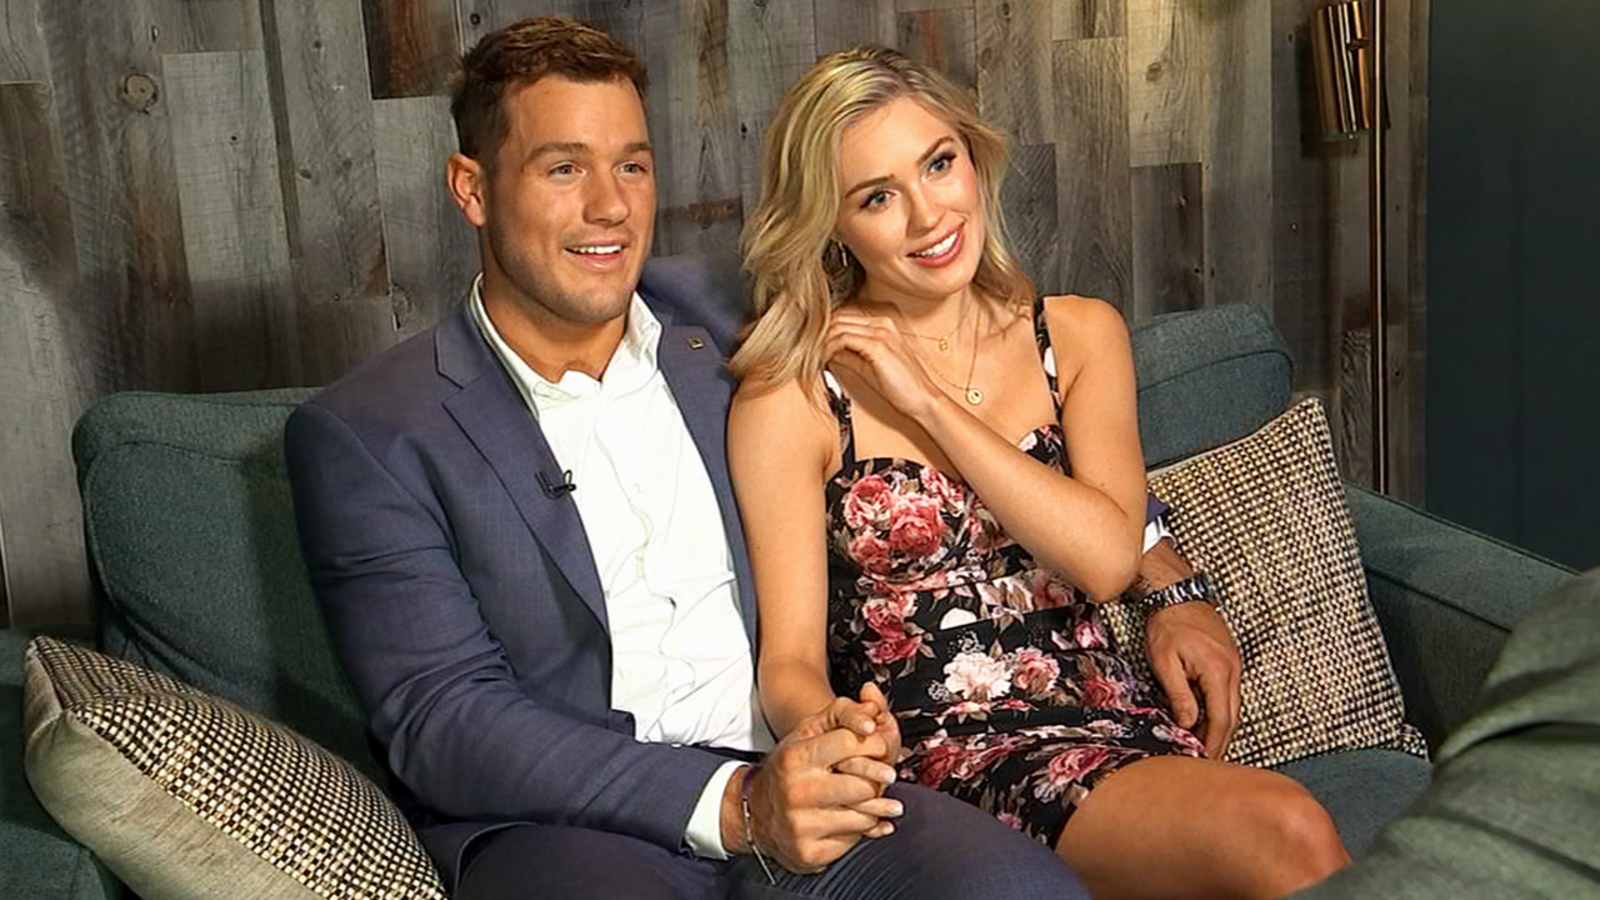 colton-underwood-says-he-and-cassie-randolph-dont-feel-any-pressure-to-get-engaged-heres-why